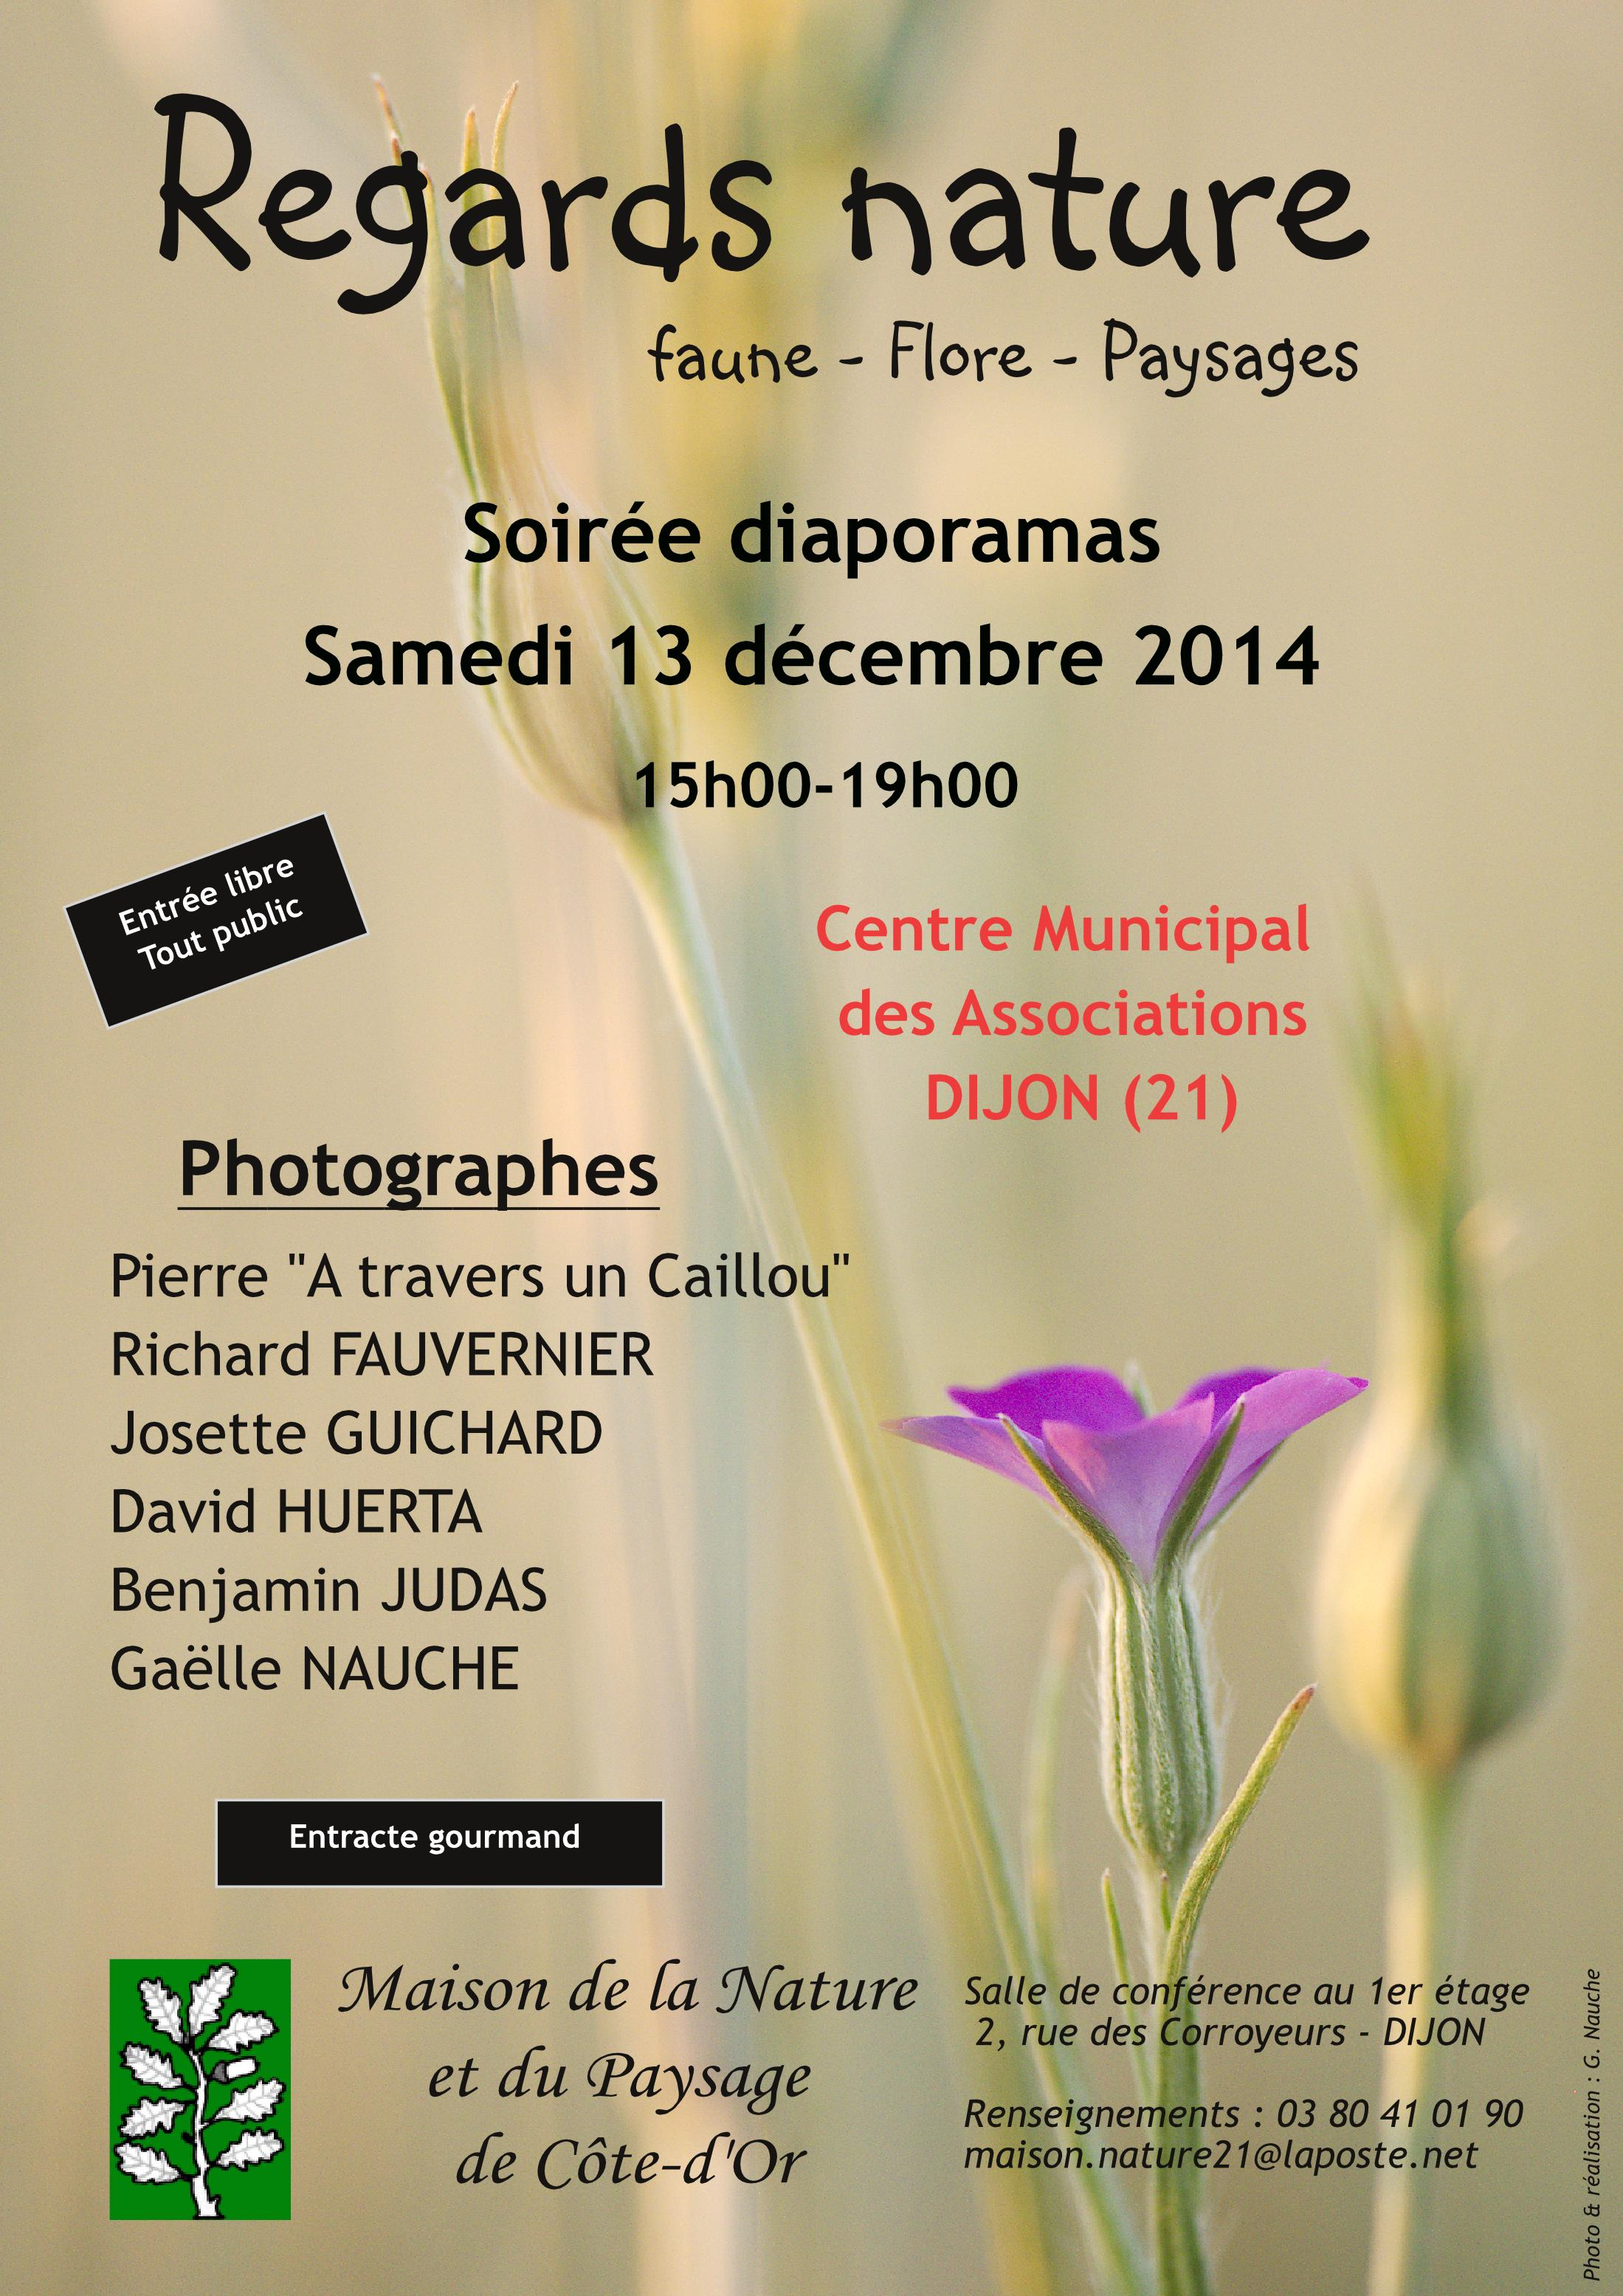 RegardsNature2014-2